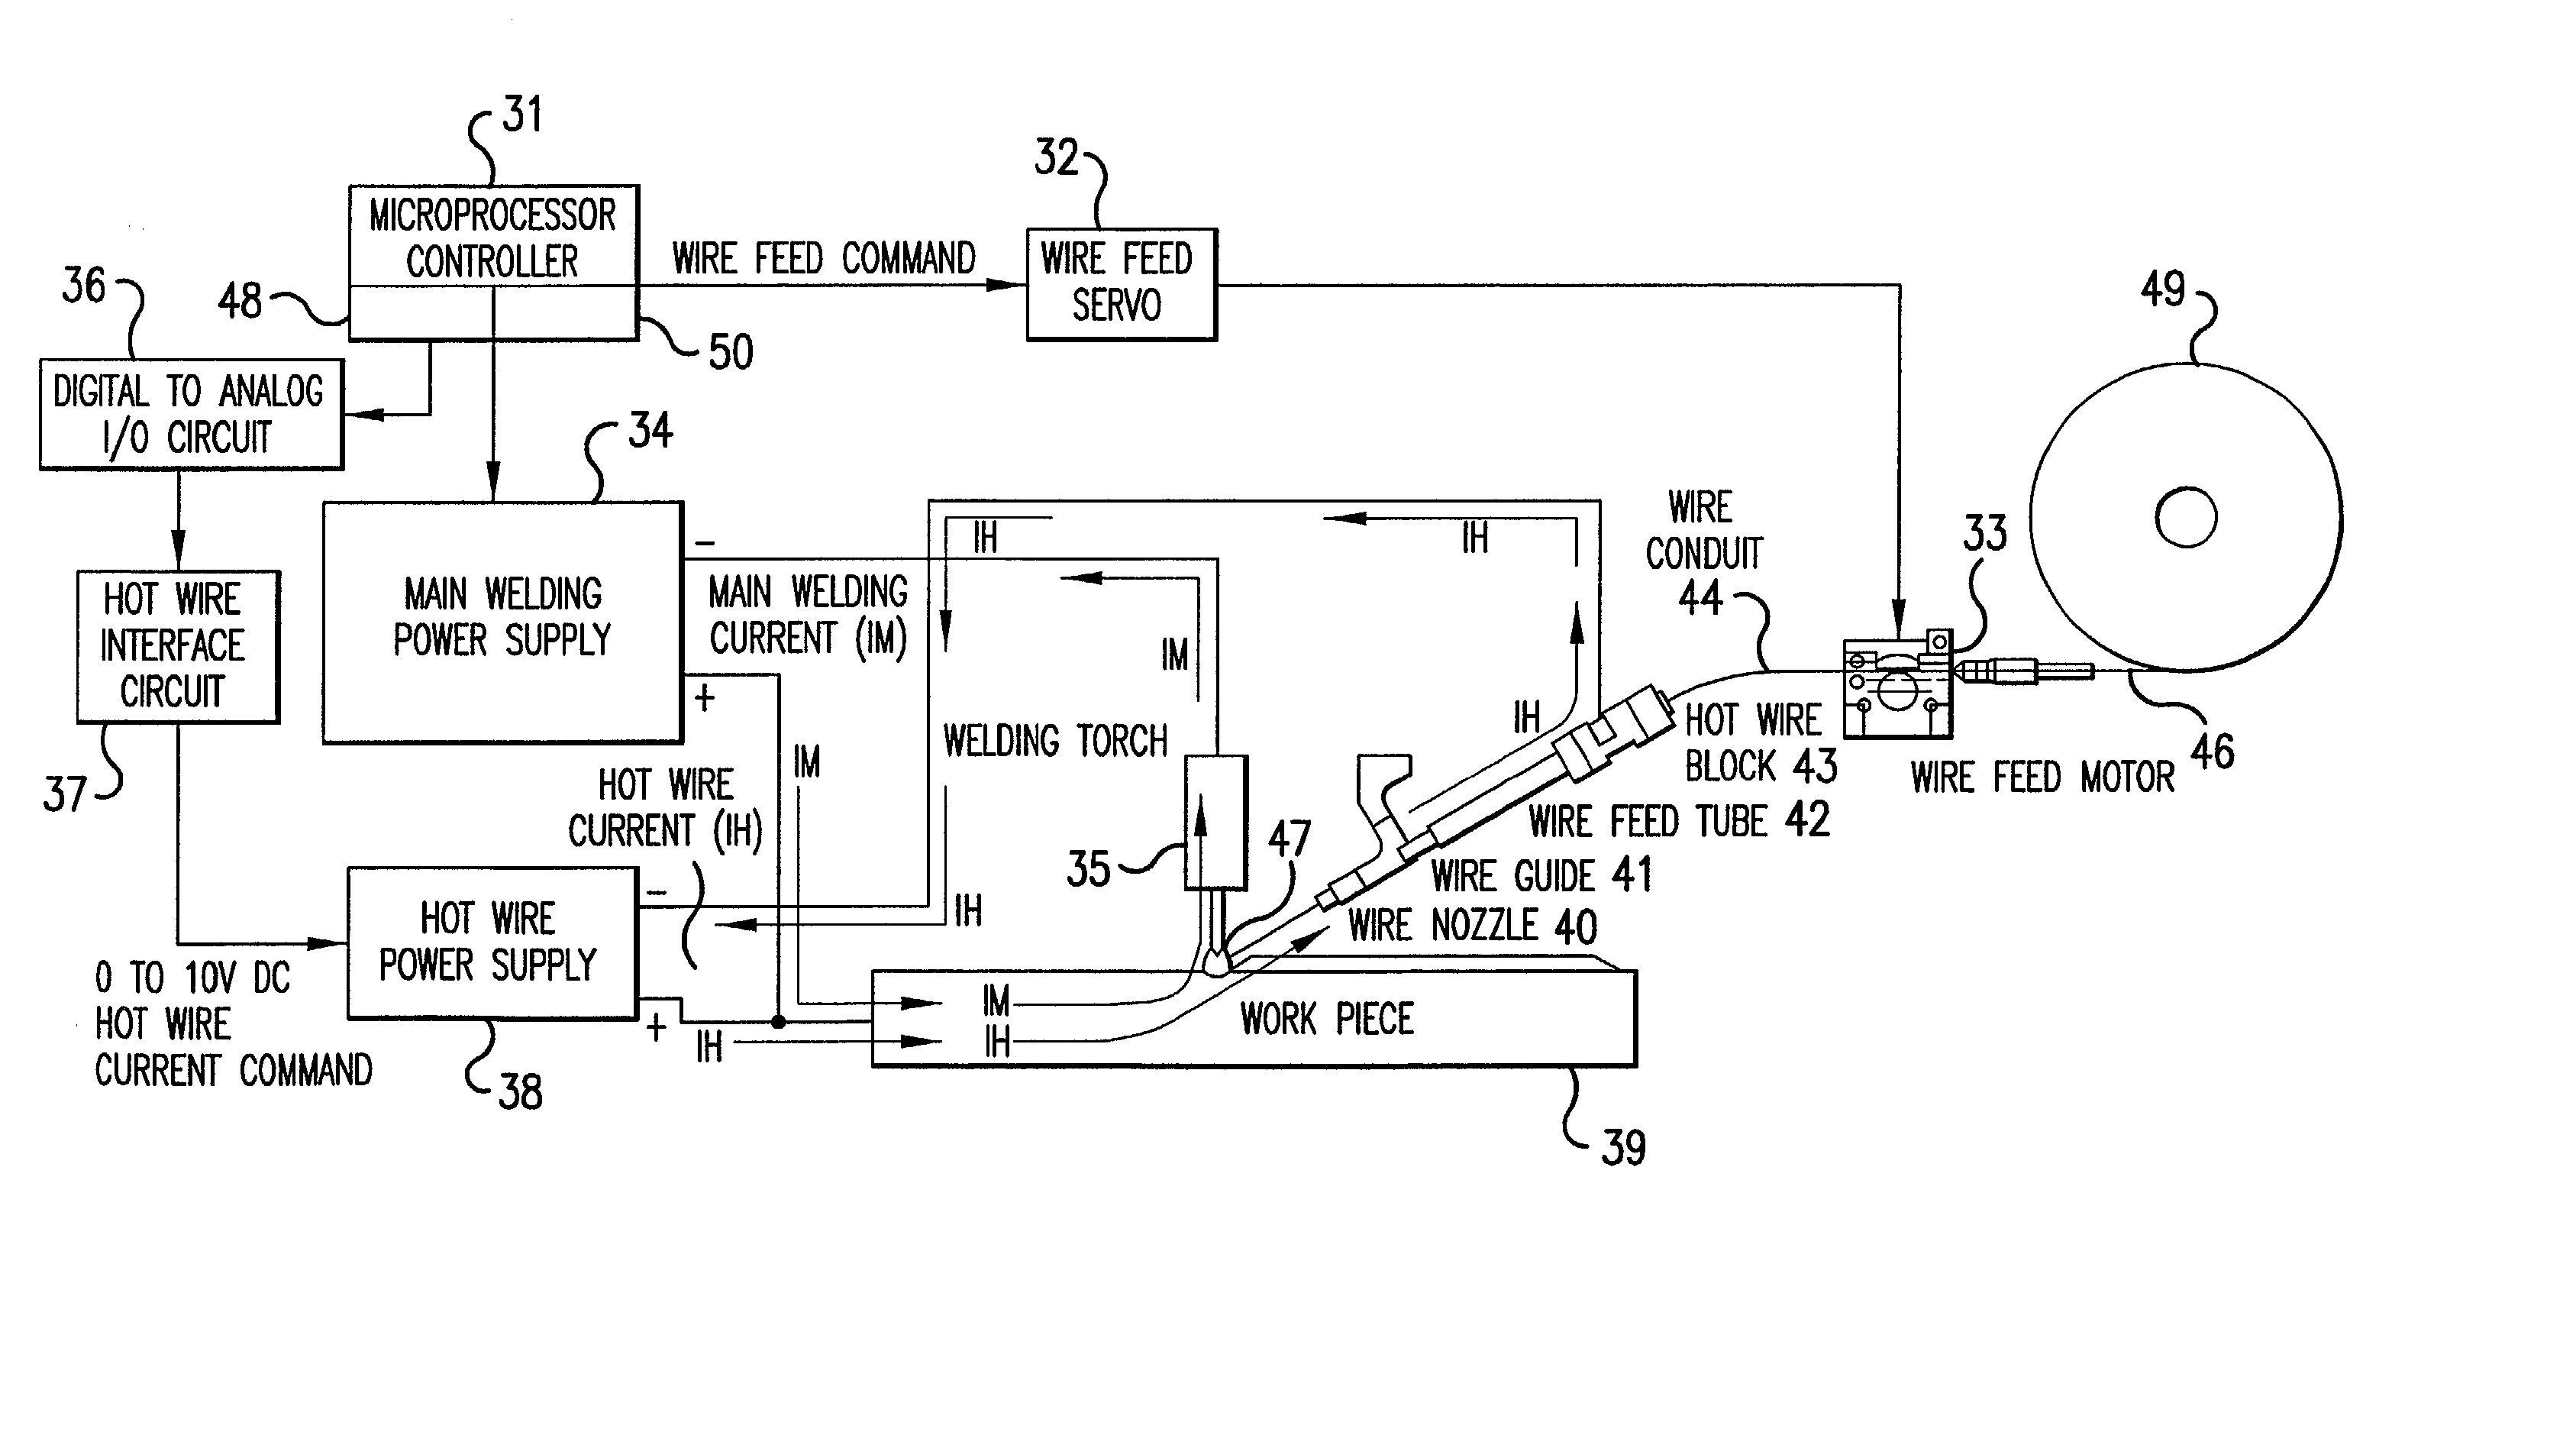 Patent Us20020117489 Method And System For Hot Wire Welding Circuit Diagram Digital Watt Meter Wiring Dc Drawing